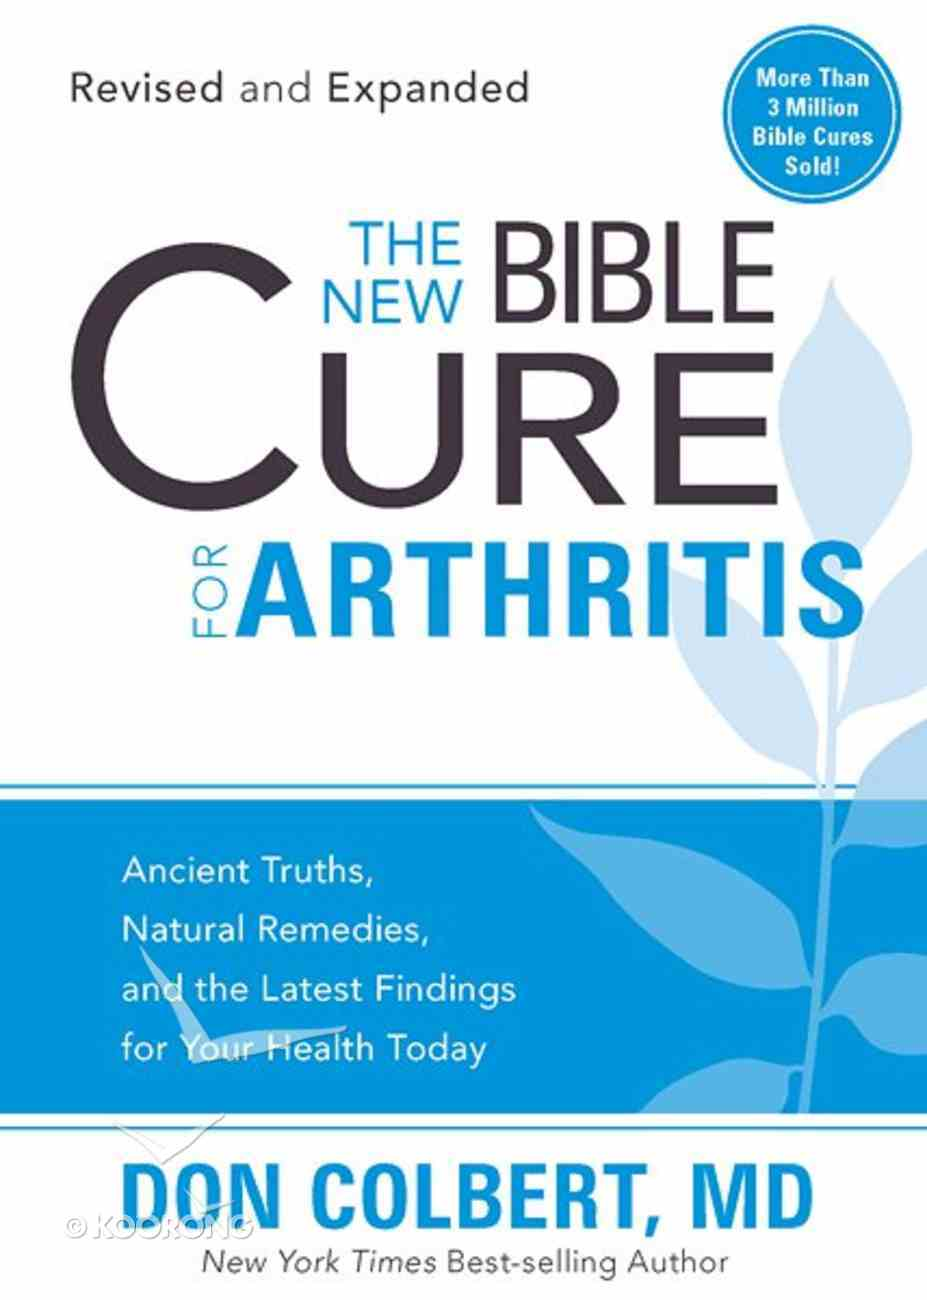 The New Bible Cure For High Blood Pressure (The New Bible Cure Series) Paperback